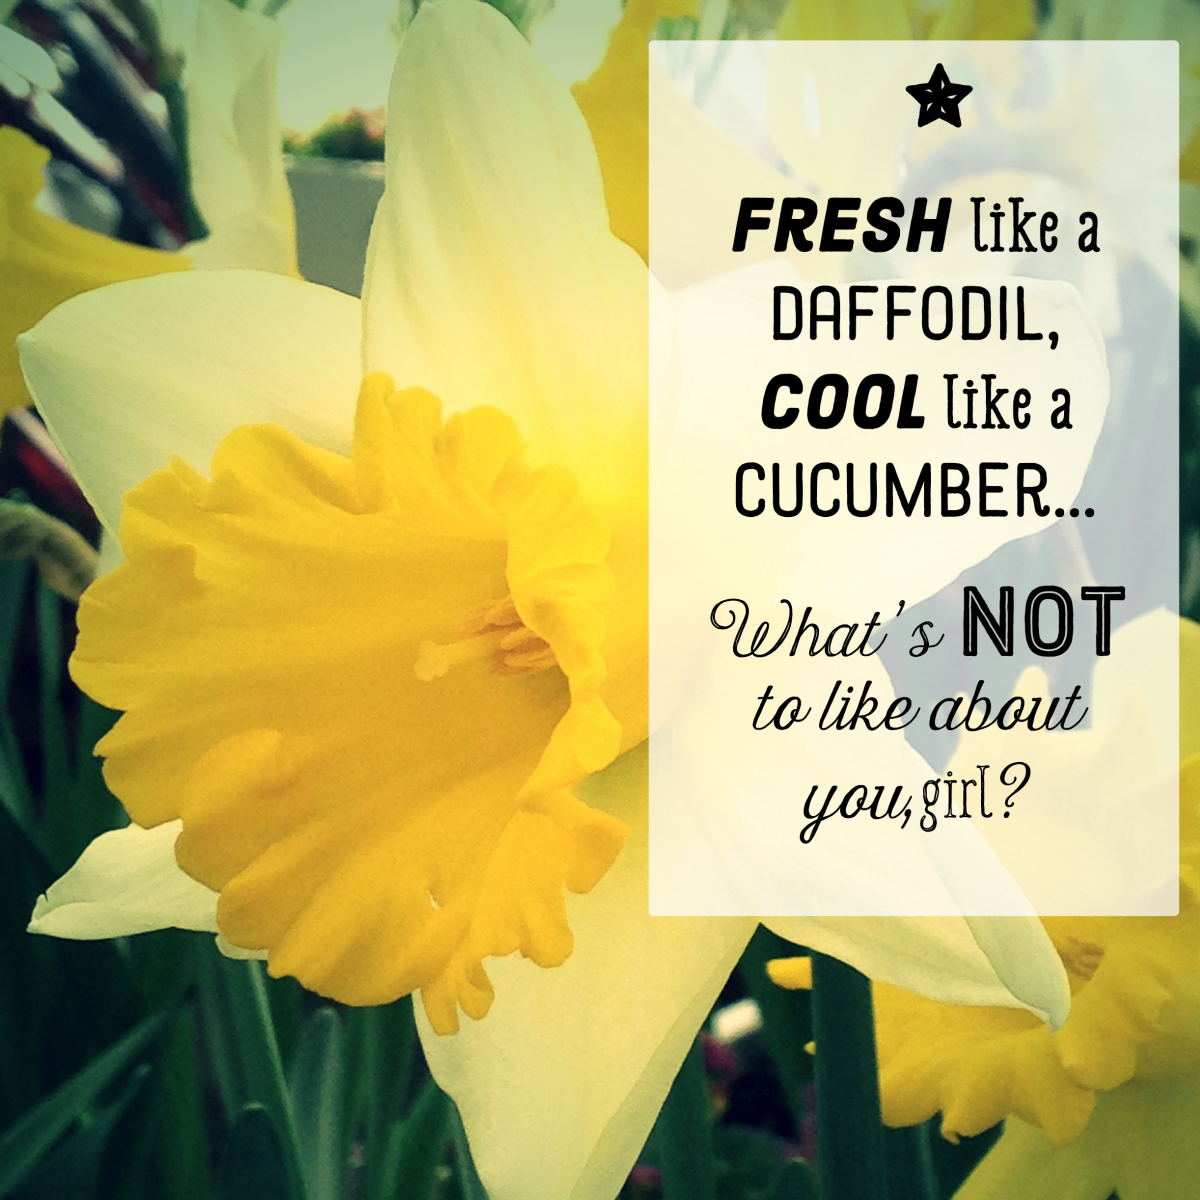 An original poem that says 'I like you': Fresh like a daffodil, cool like a cucumber—what's not to like about you, girl?